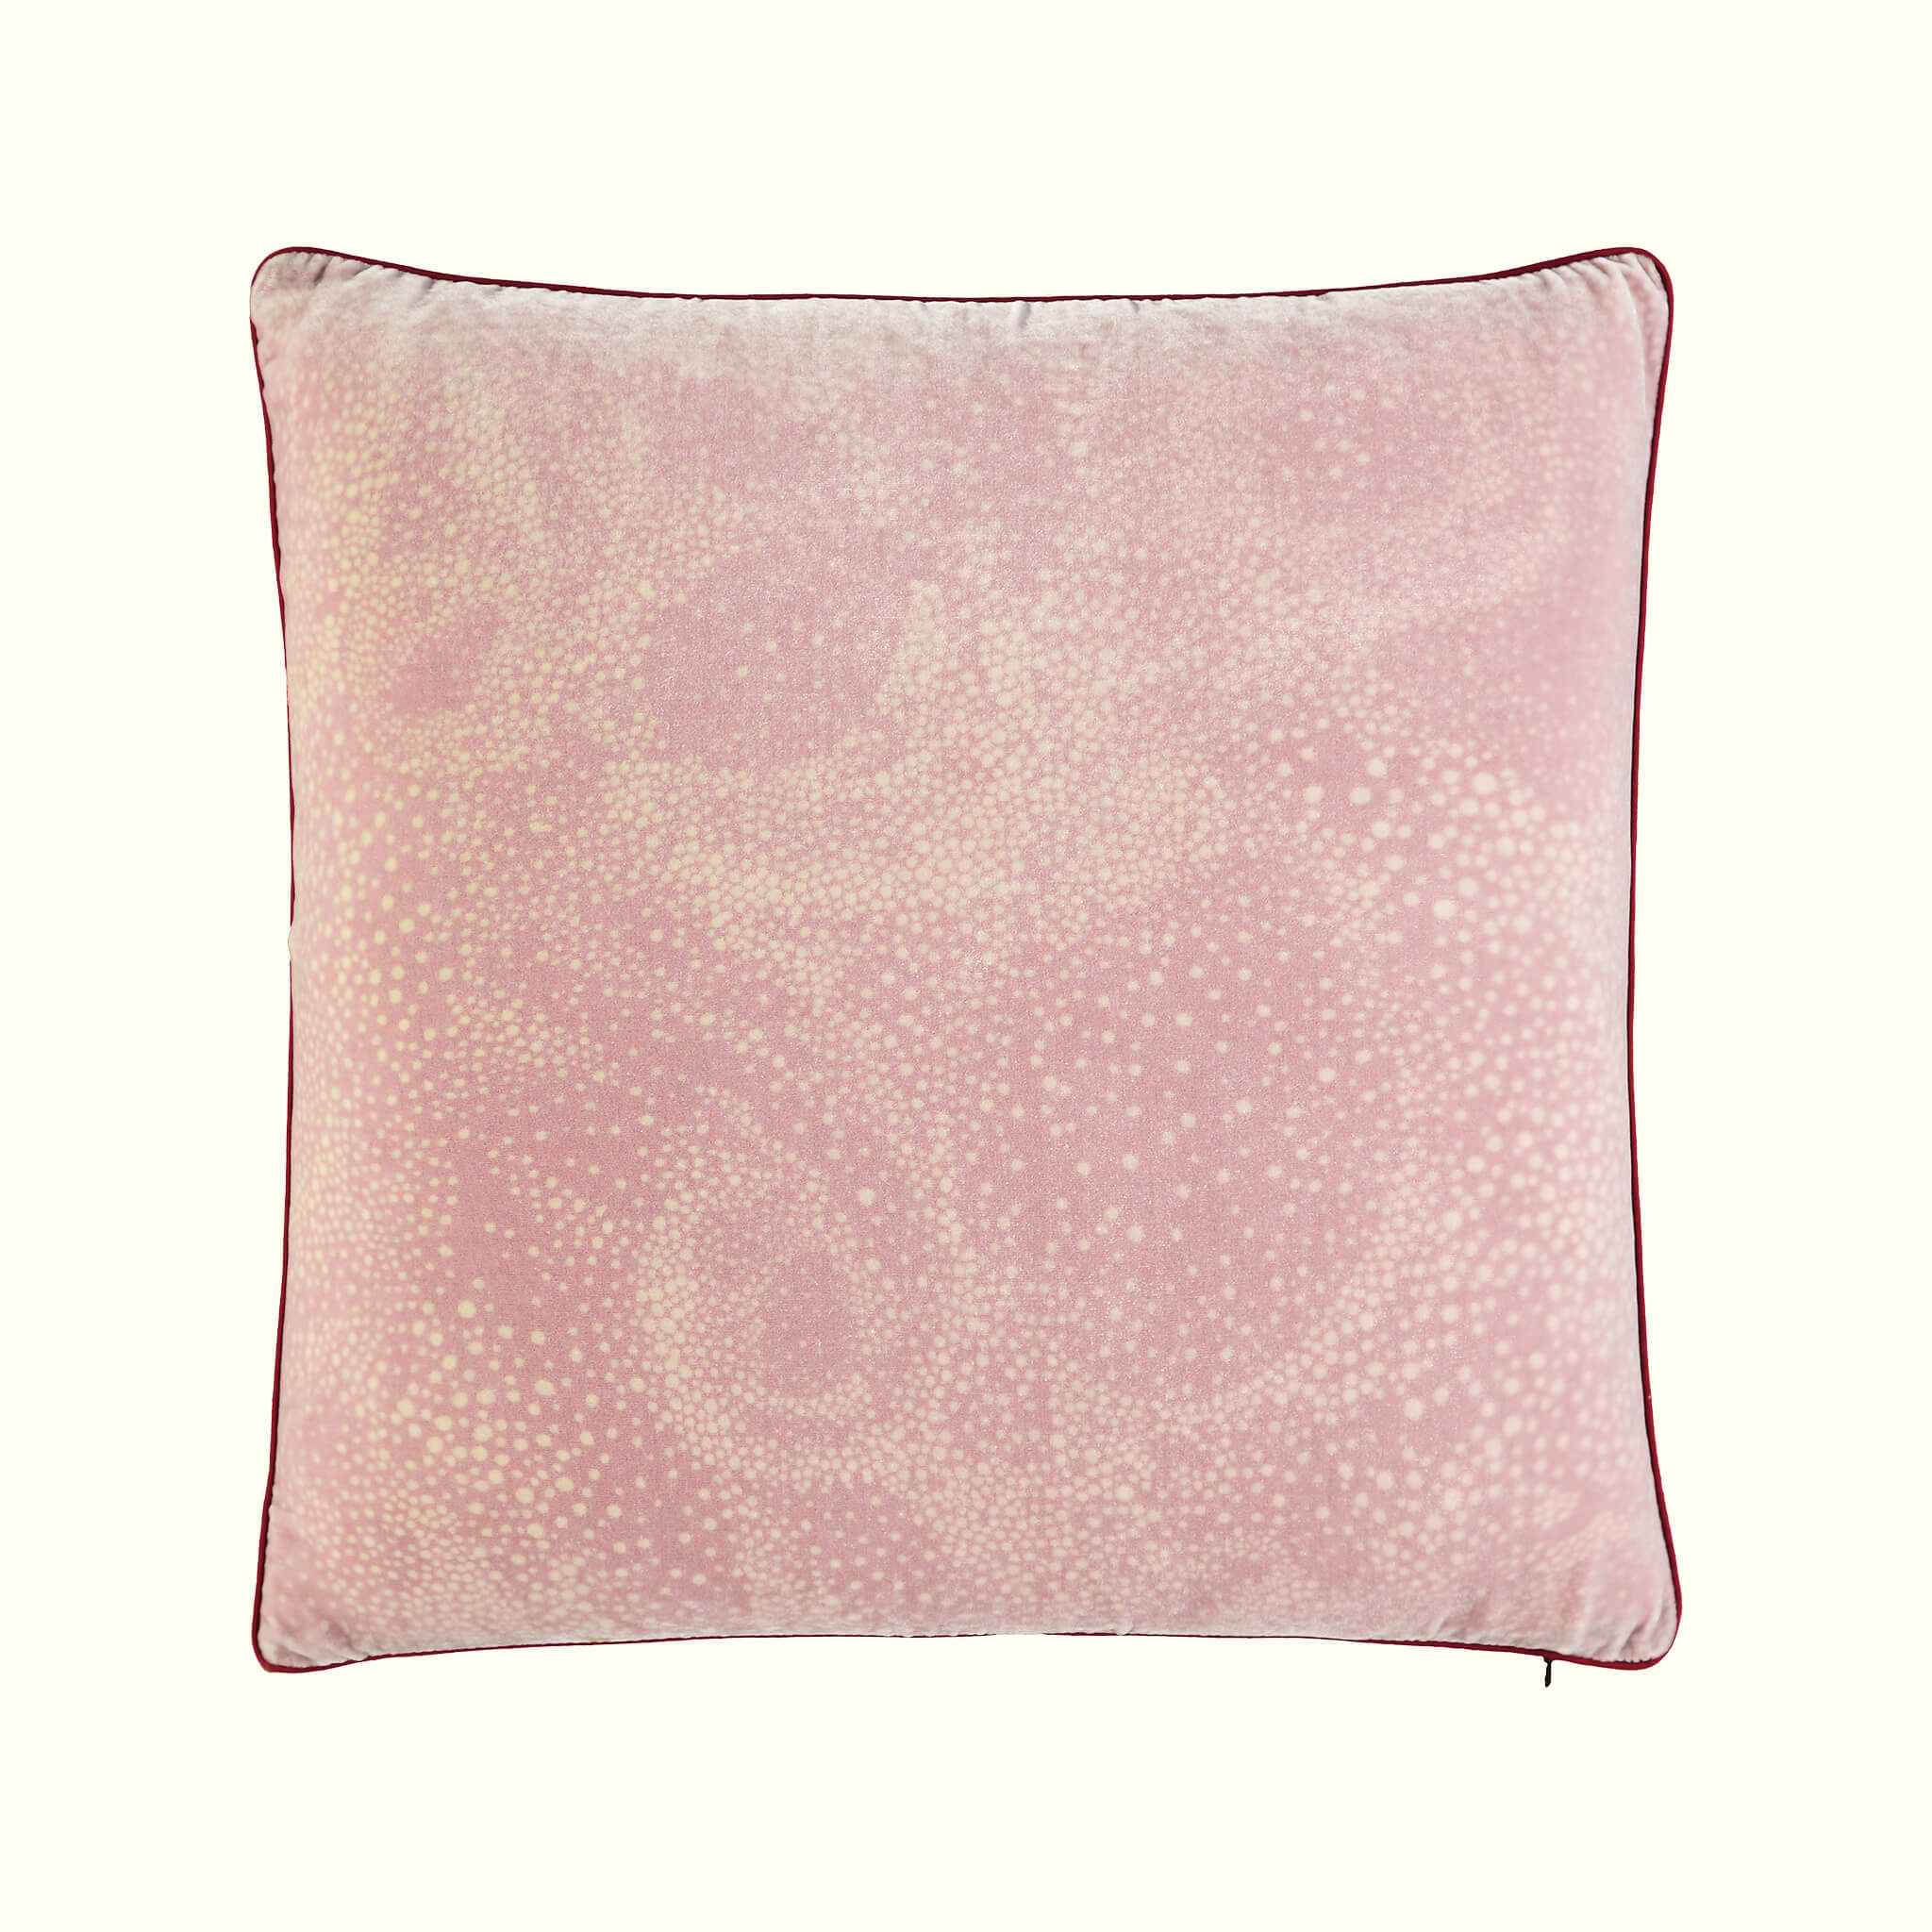 A luxury British silk velvet cushion by GVE in dusty pink Aurora print design.